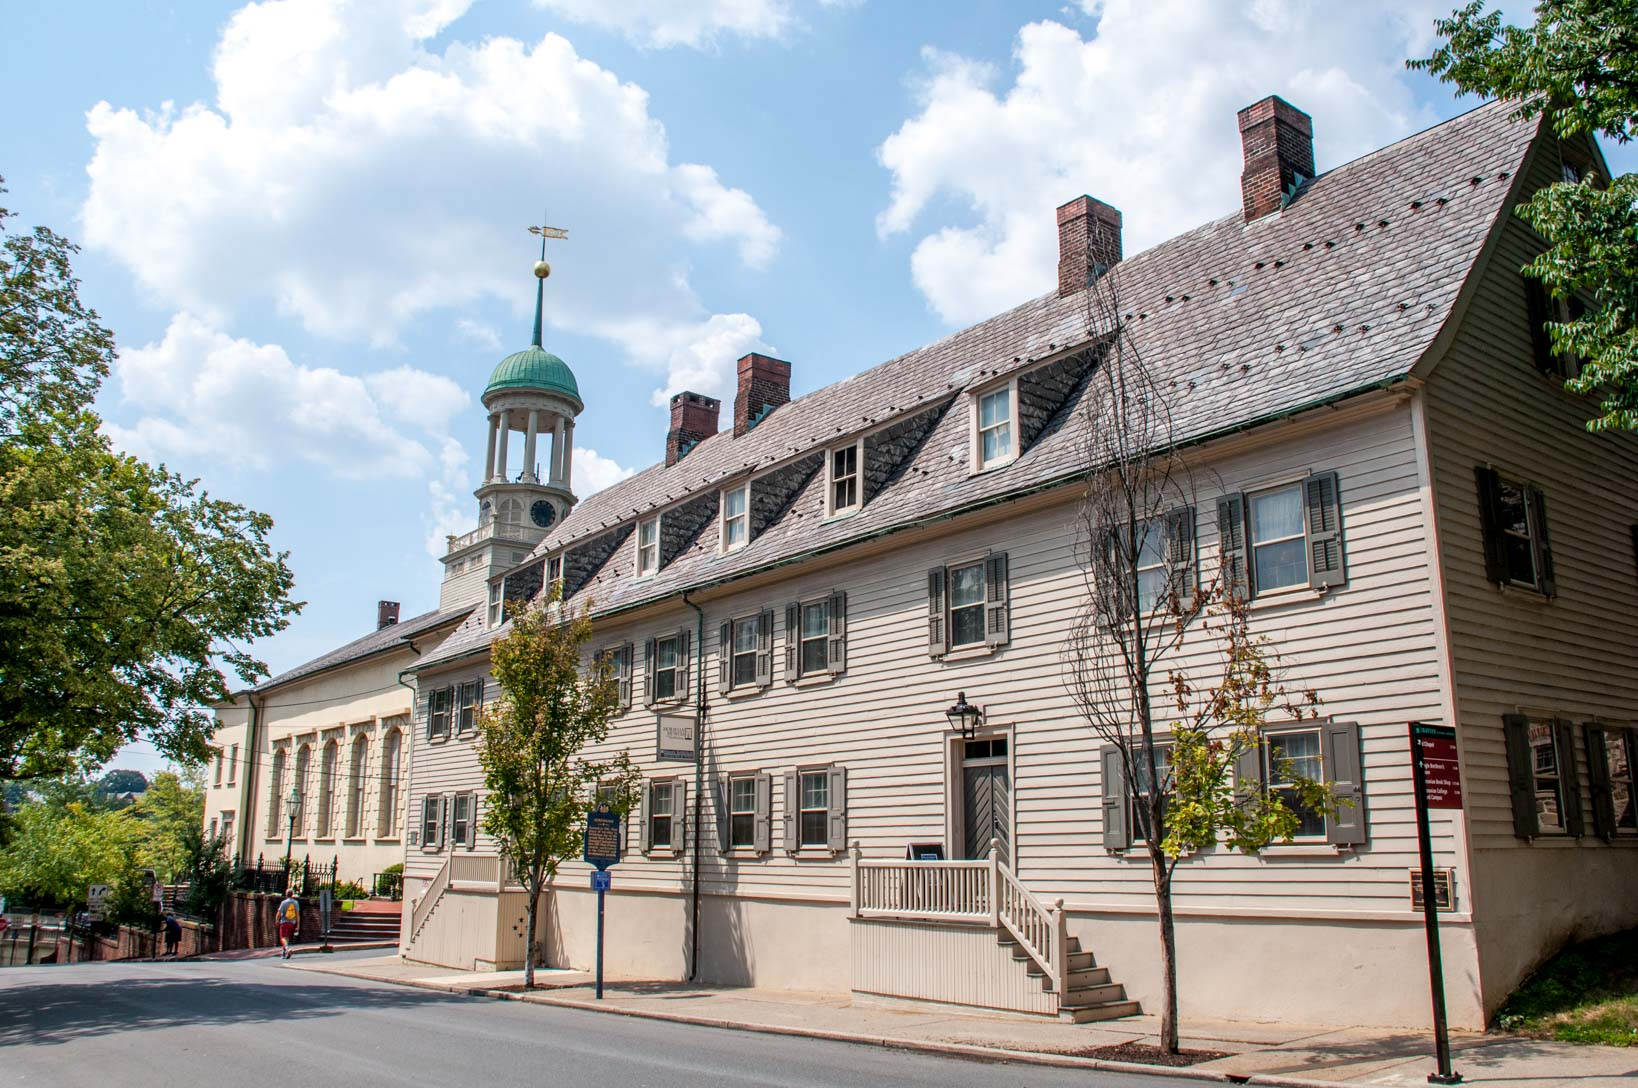 One of the Moravian buildings in Bethlehem PA